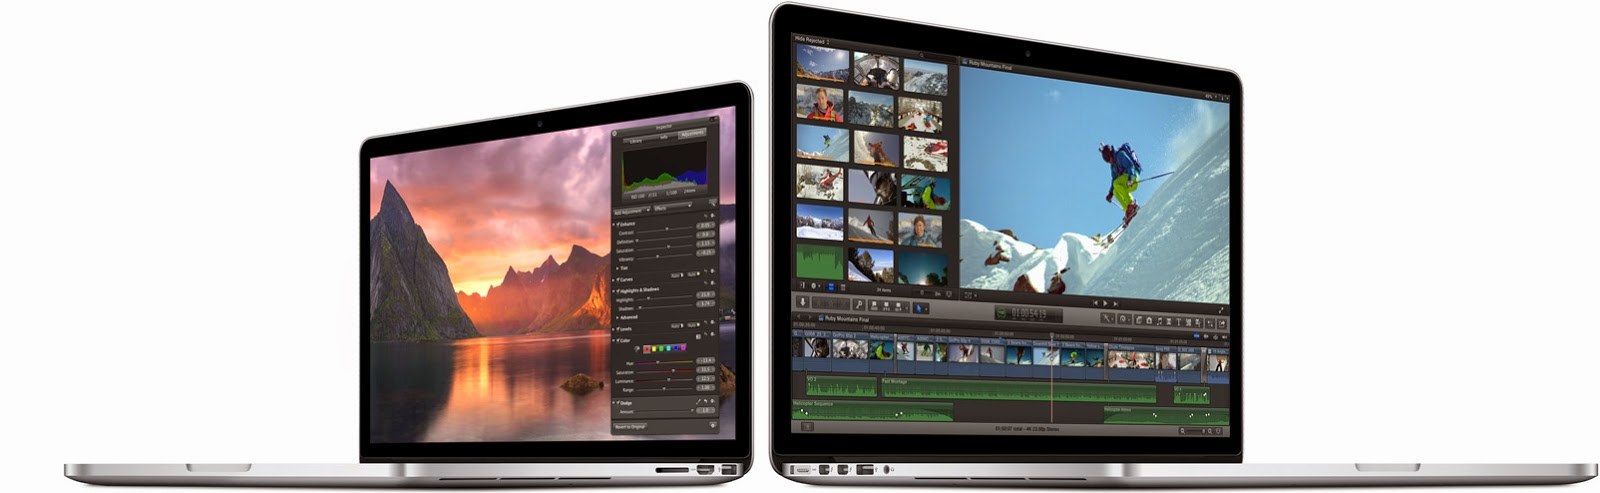 apple MacBook Pro terbaru